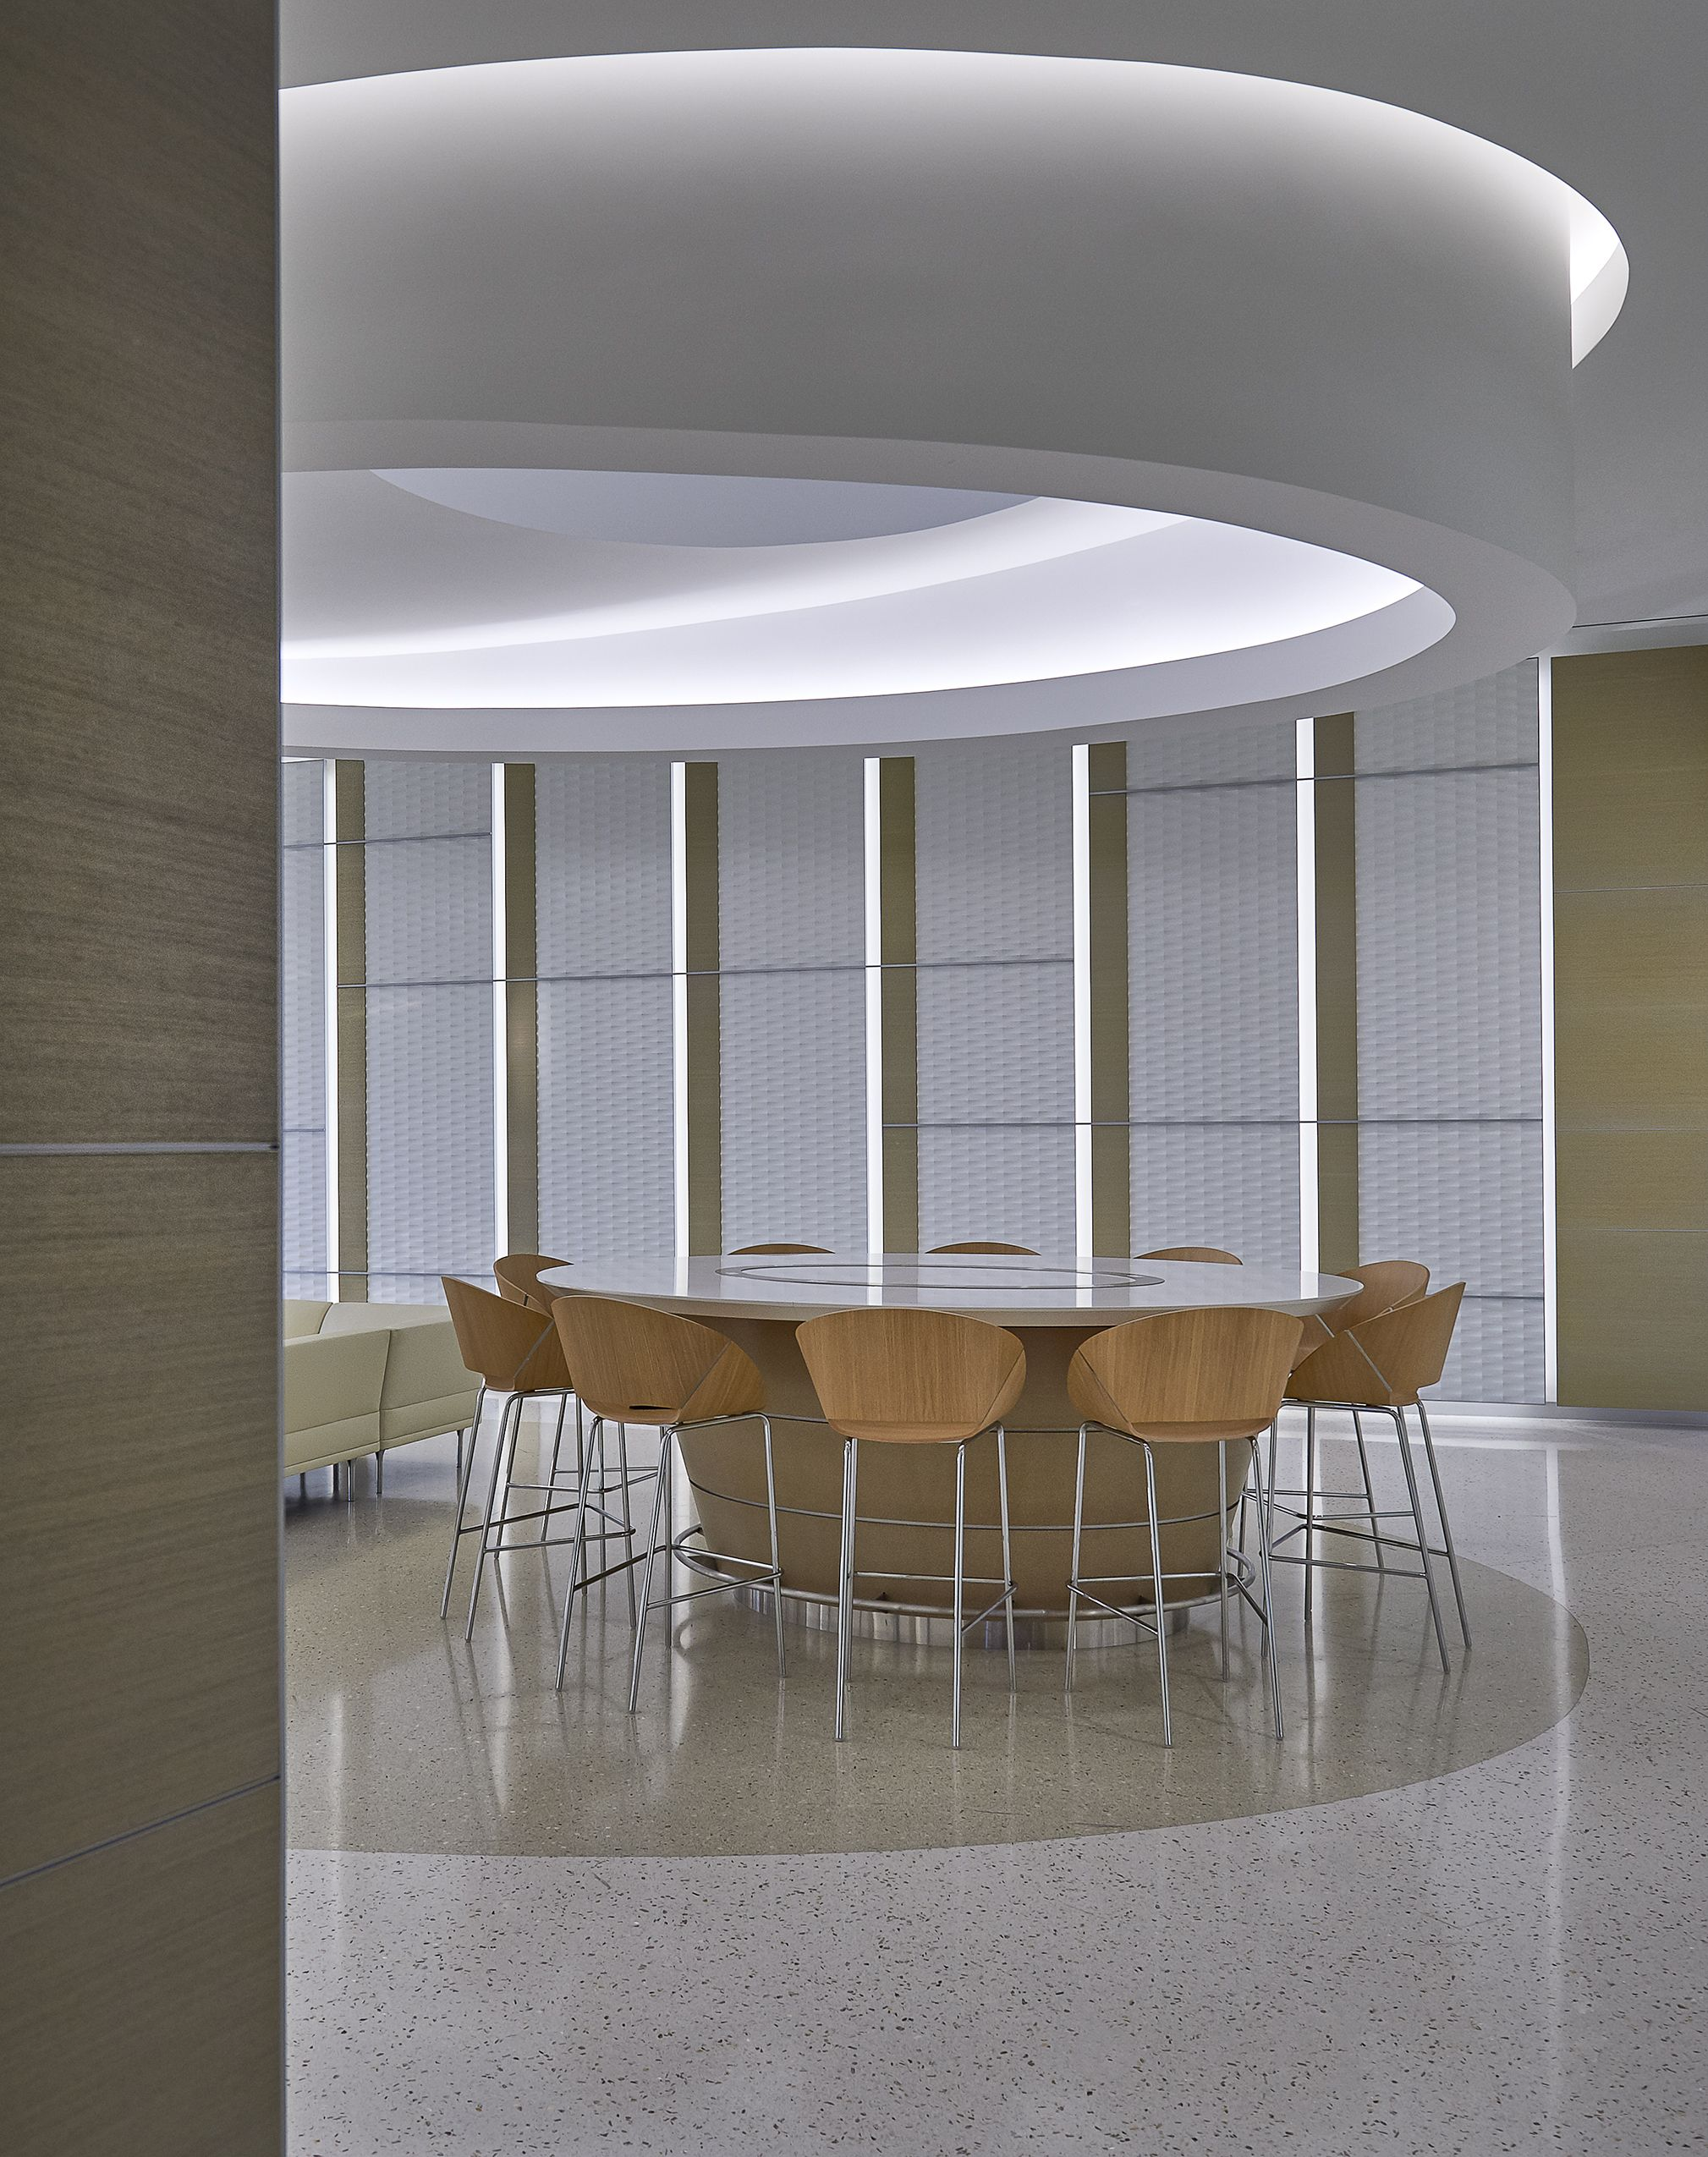 Alcon Experience Center  Healthcare design, Design, Dining chairs